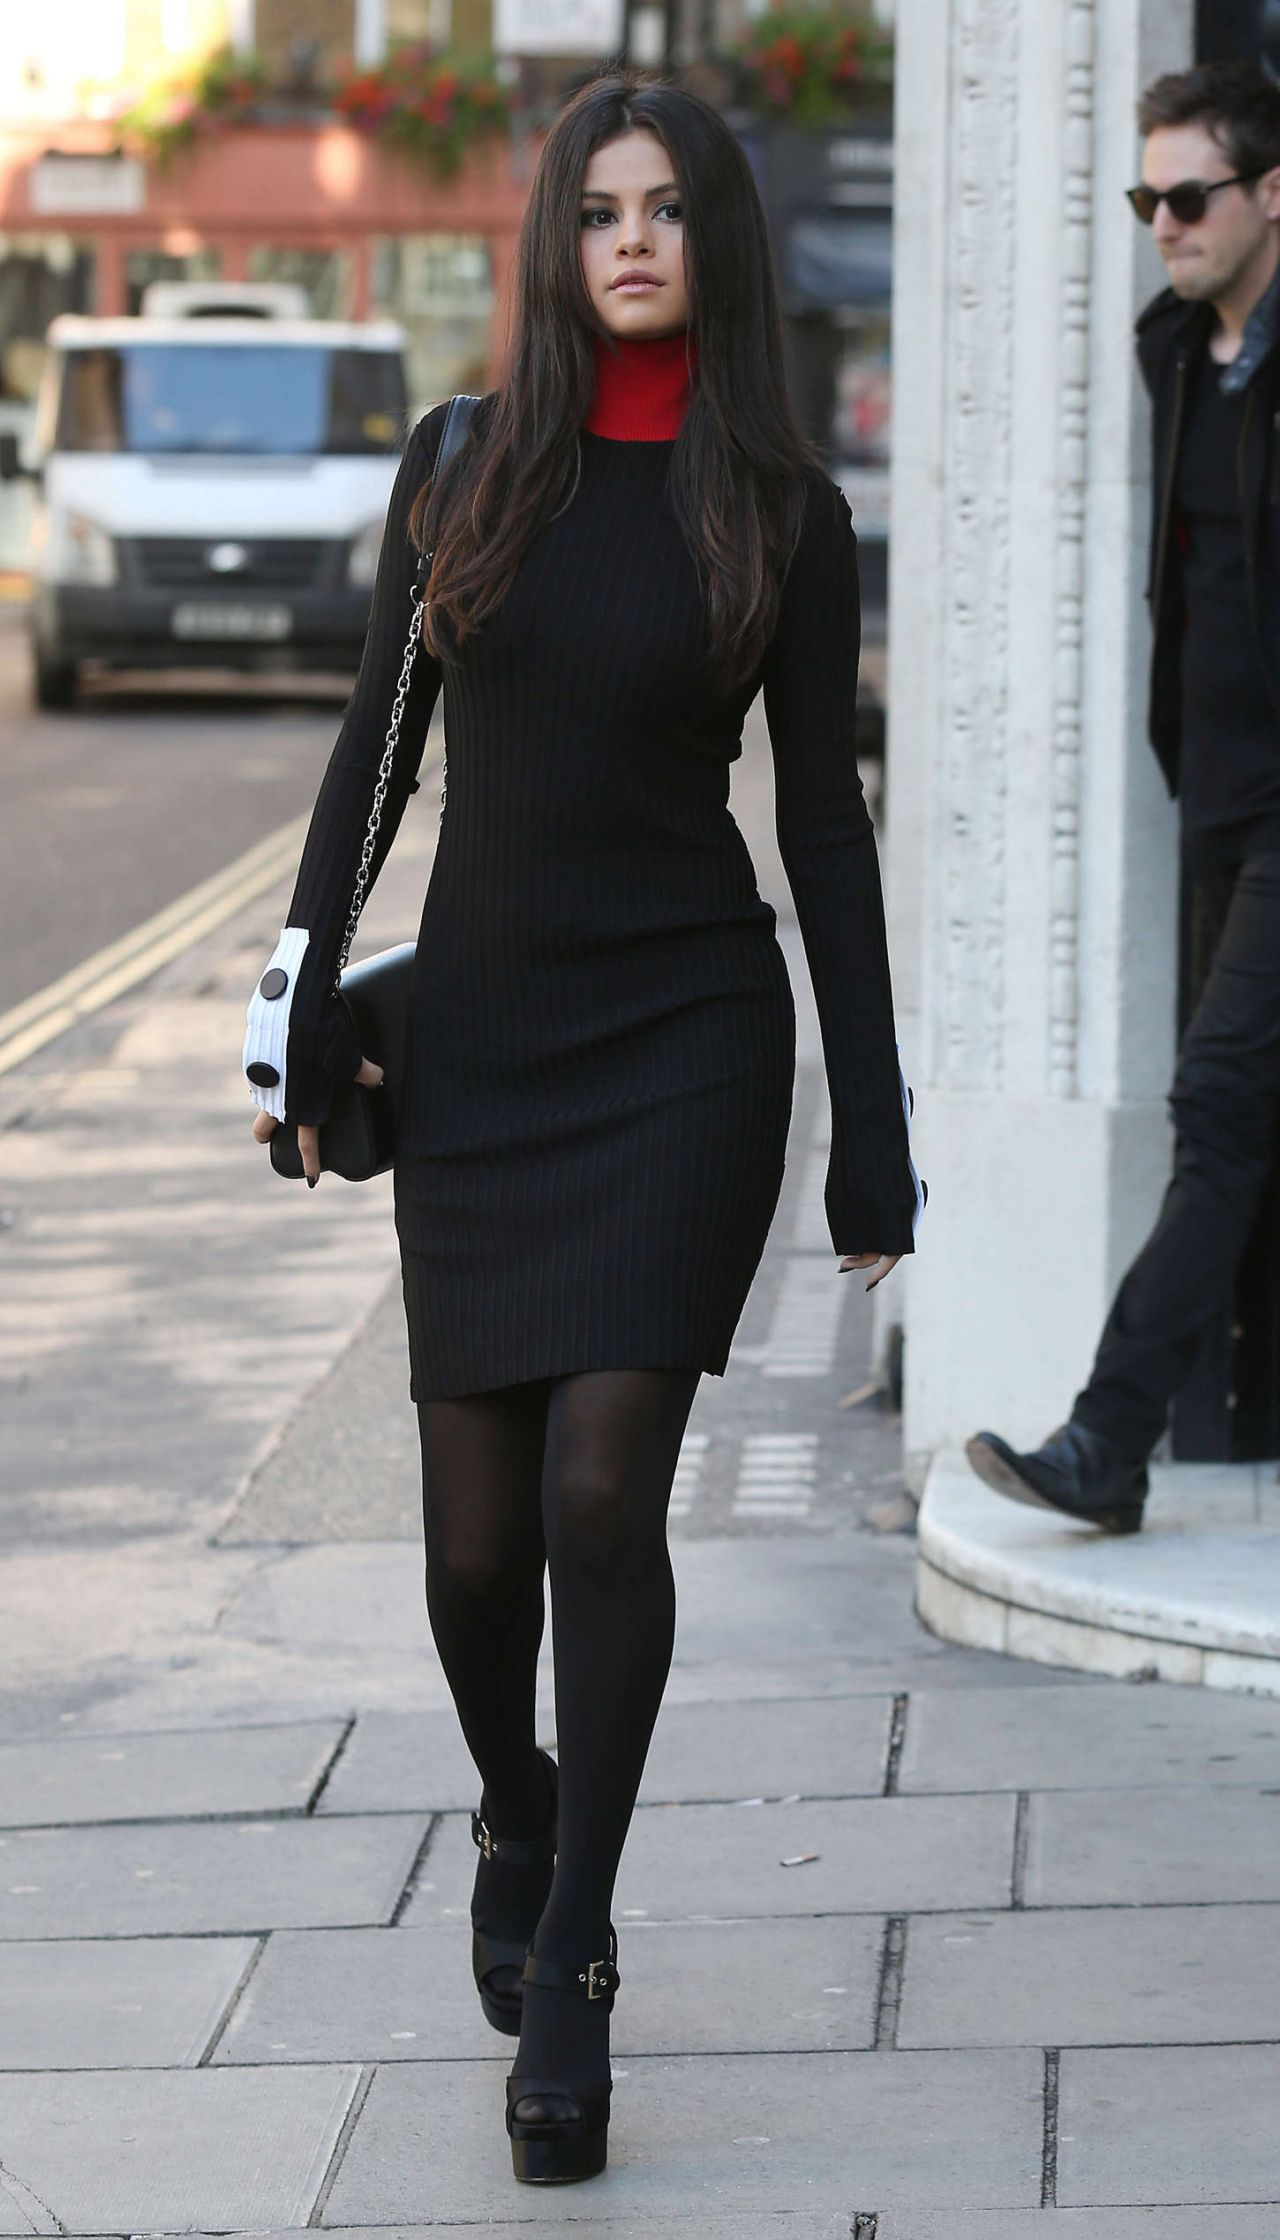 Selena Gomez Style Leaving Kiss Fm Studios In London September 2015